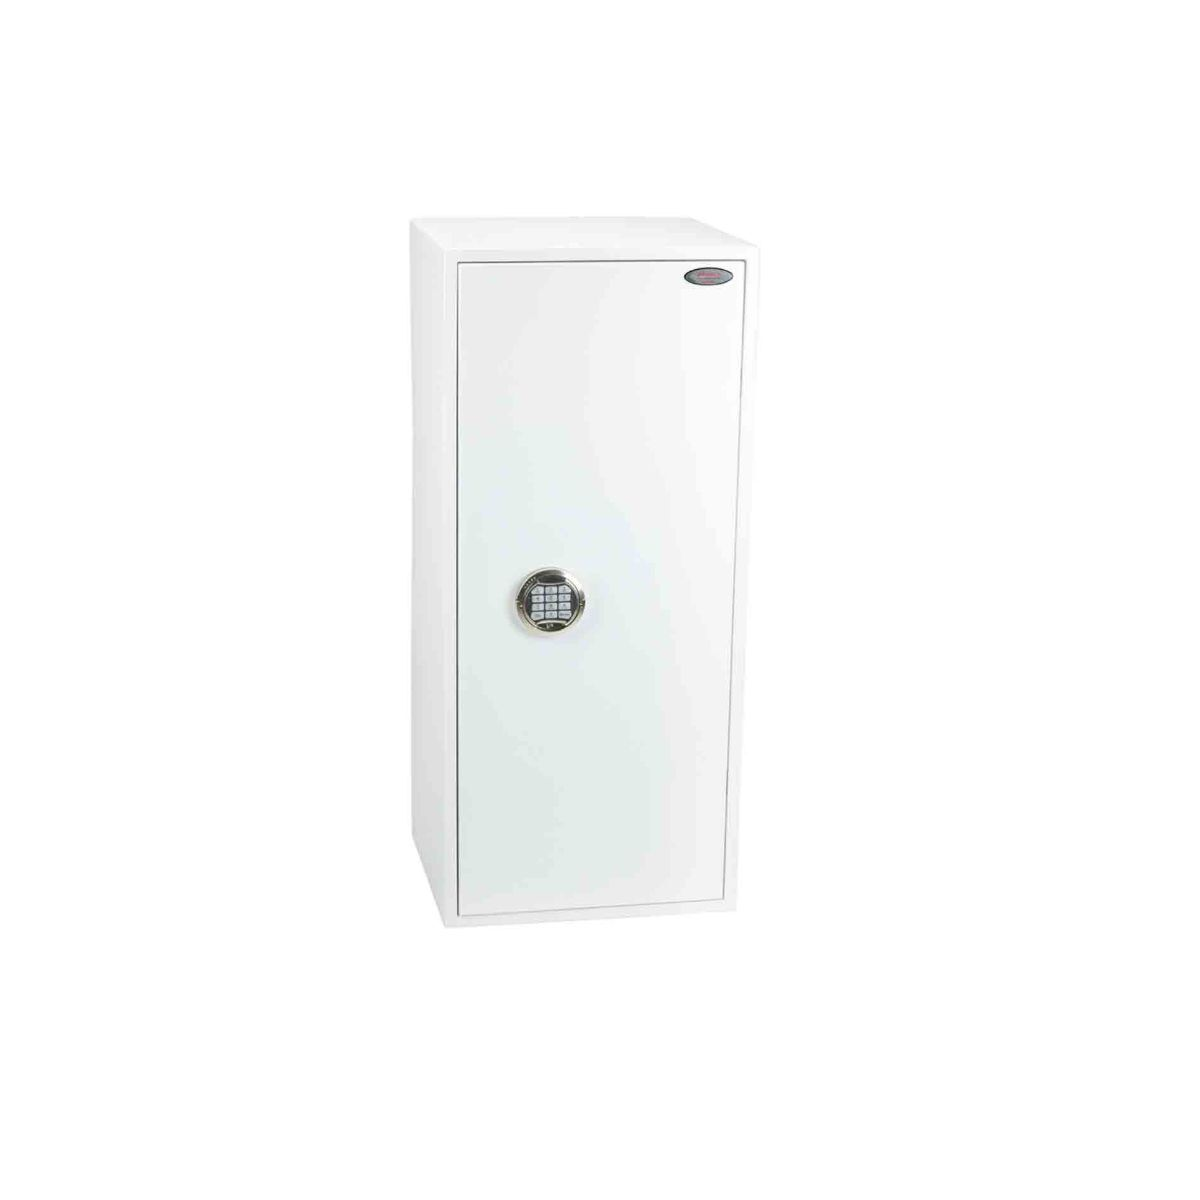 Phoenix Fortress S2 Security Safe with Electronic Lock Size 5